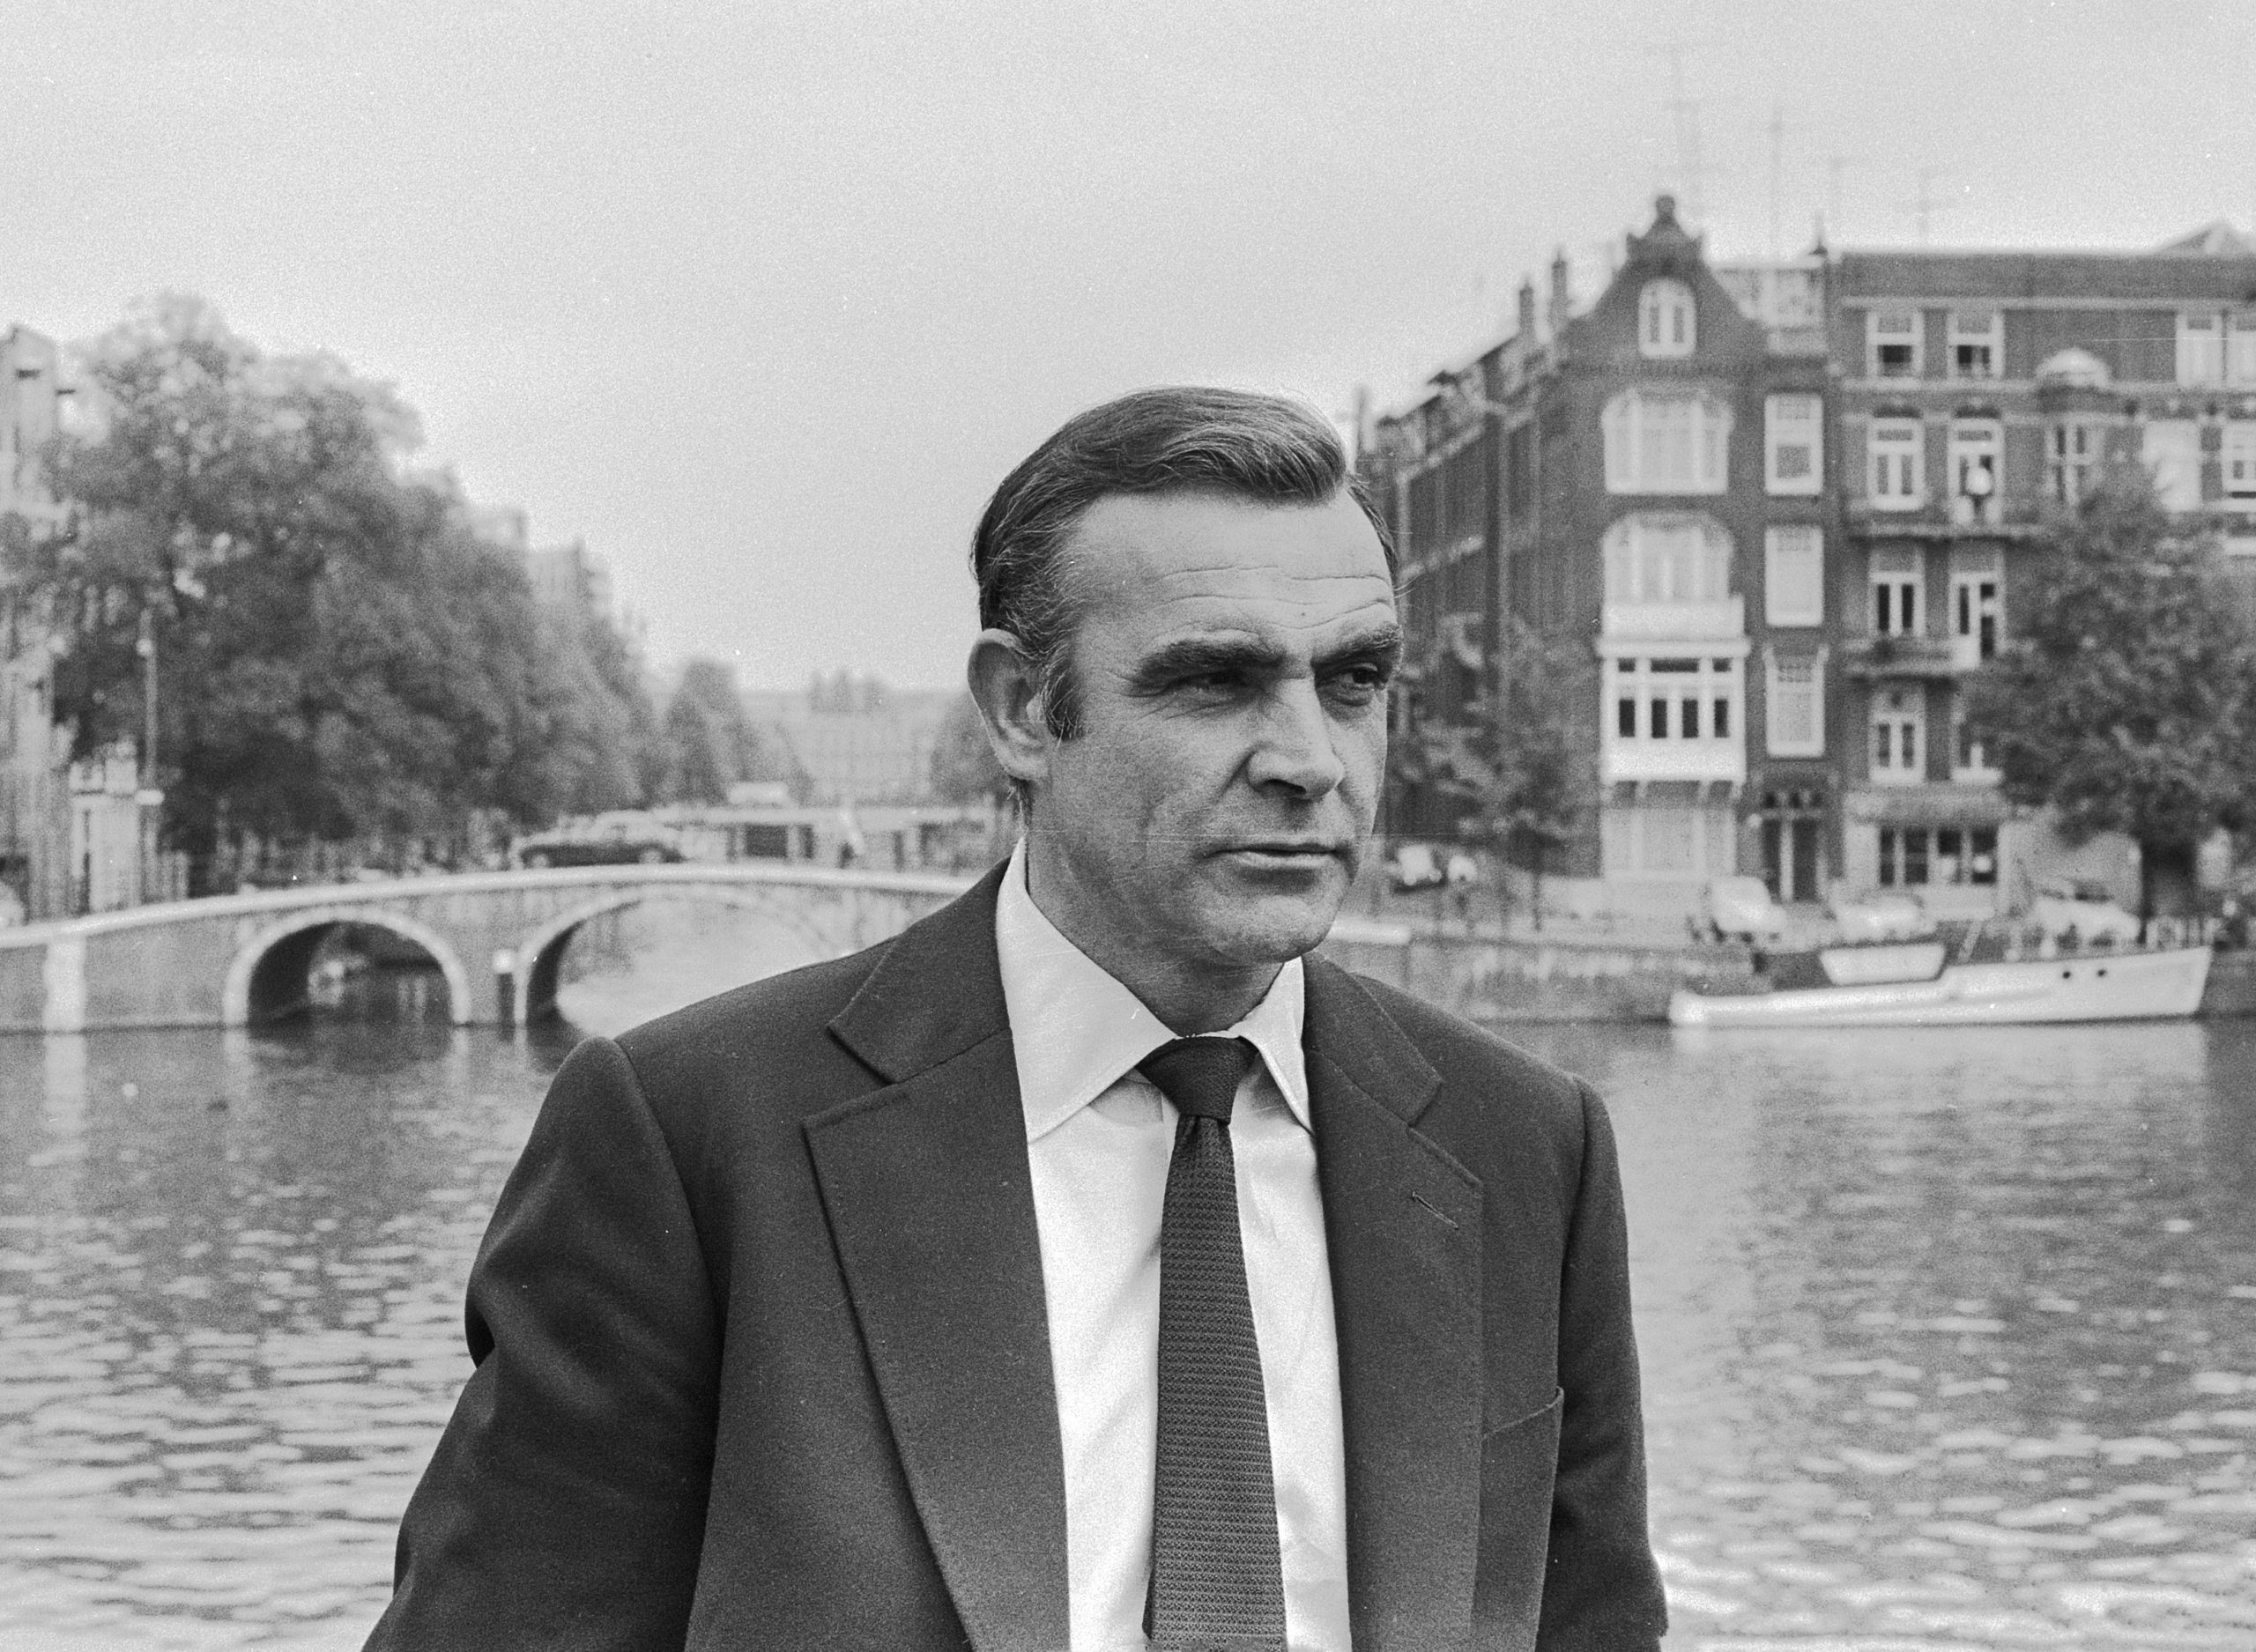 sean connery cool guy scaled 20 Things You Never Knew About Sean Connery